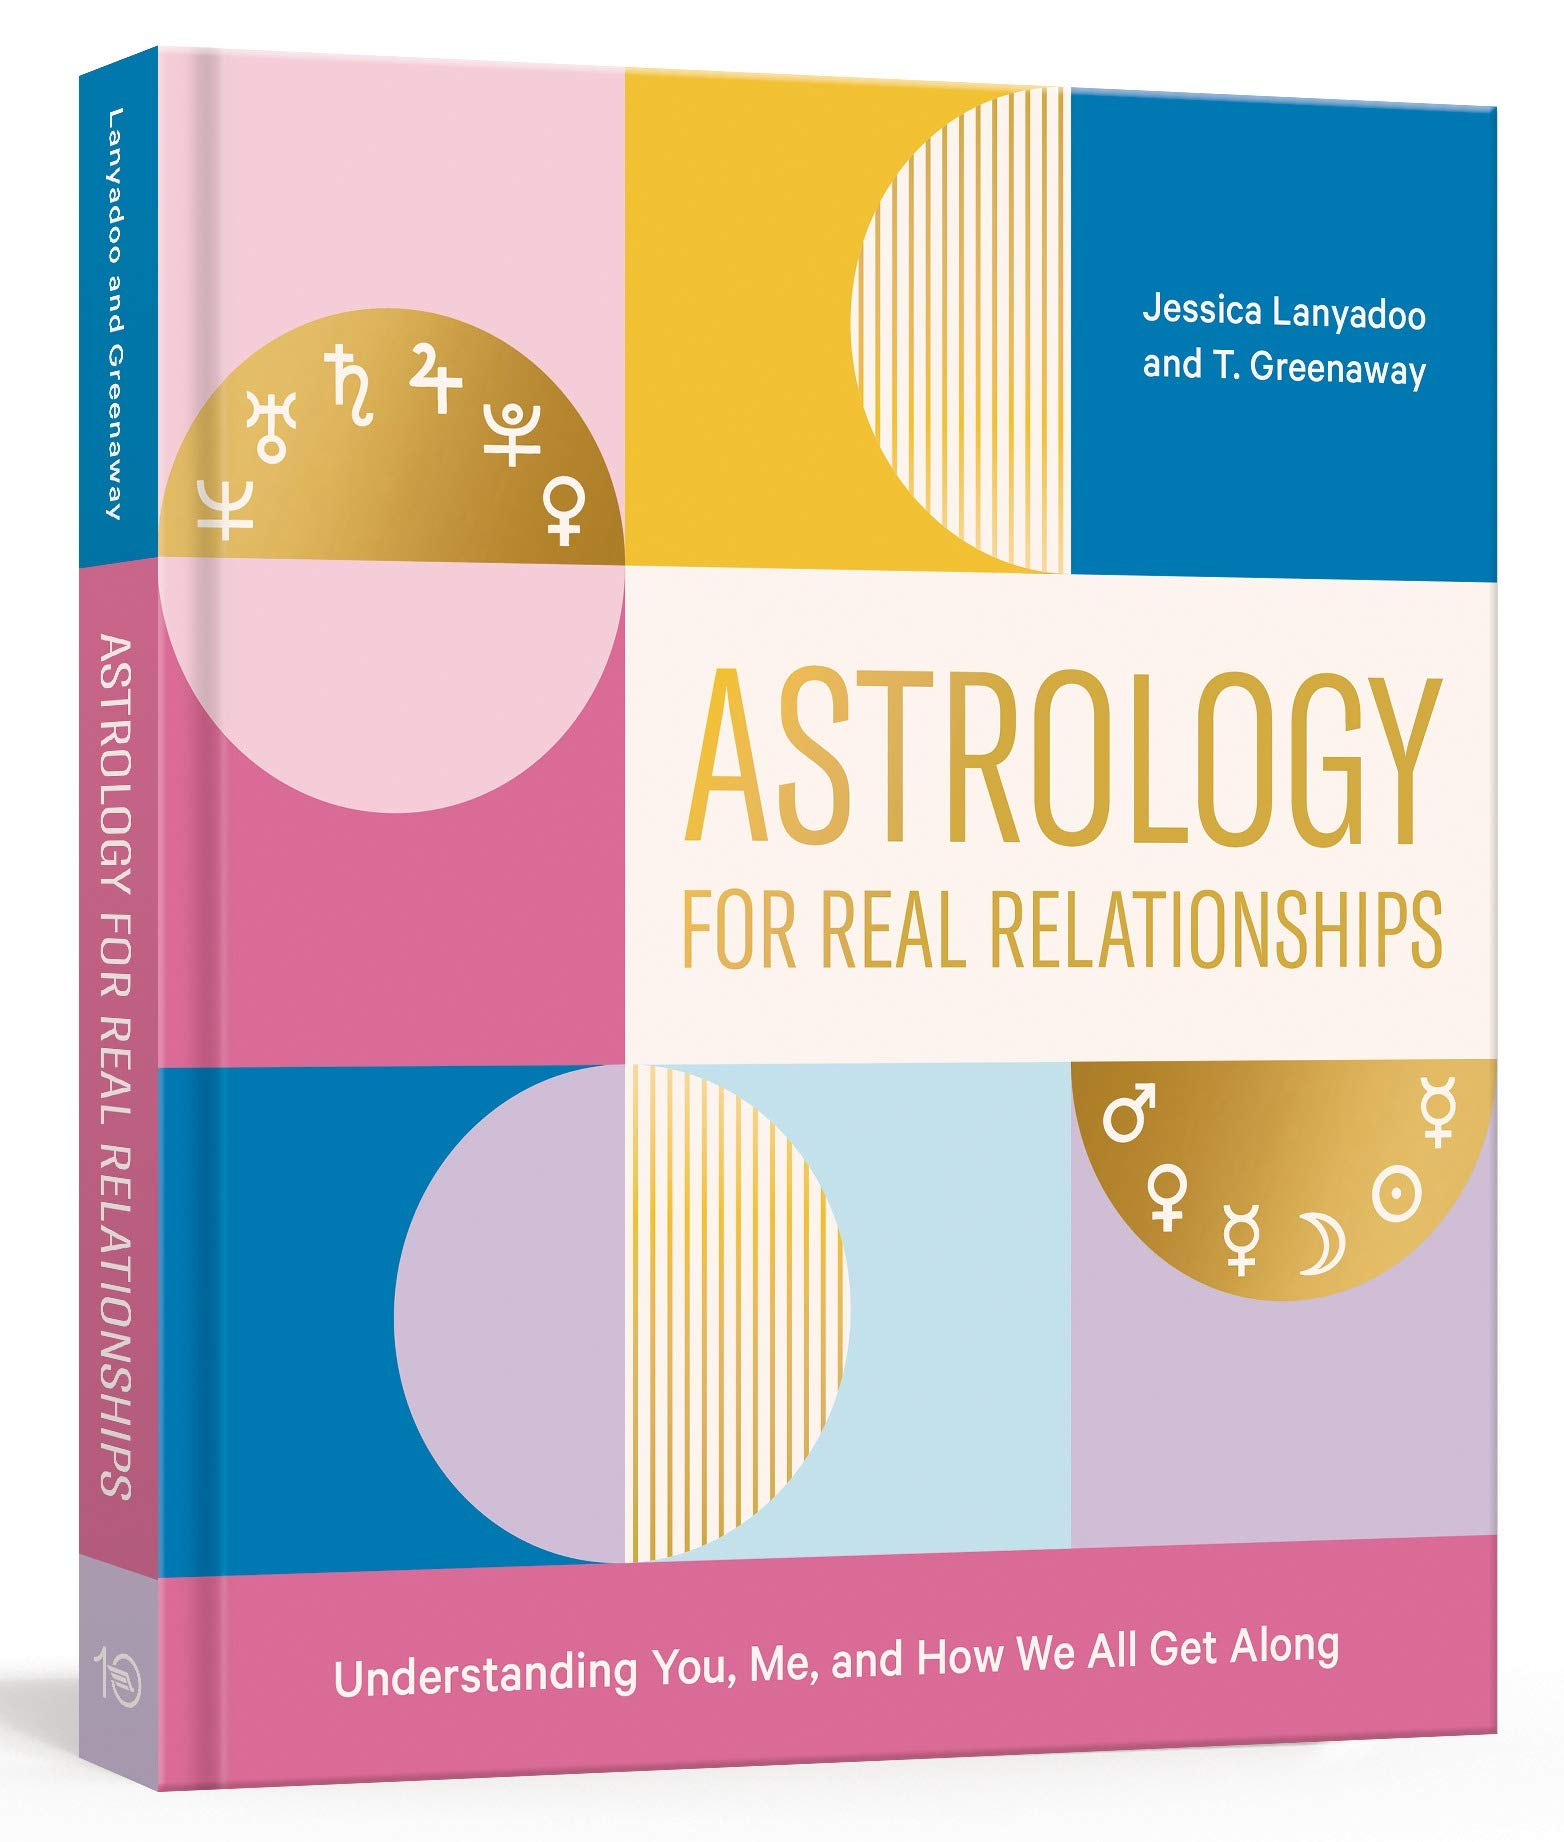 Astrology for relationships book amazon